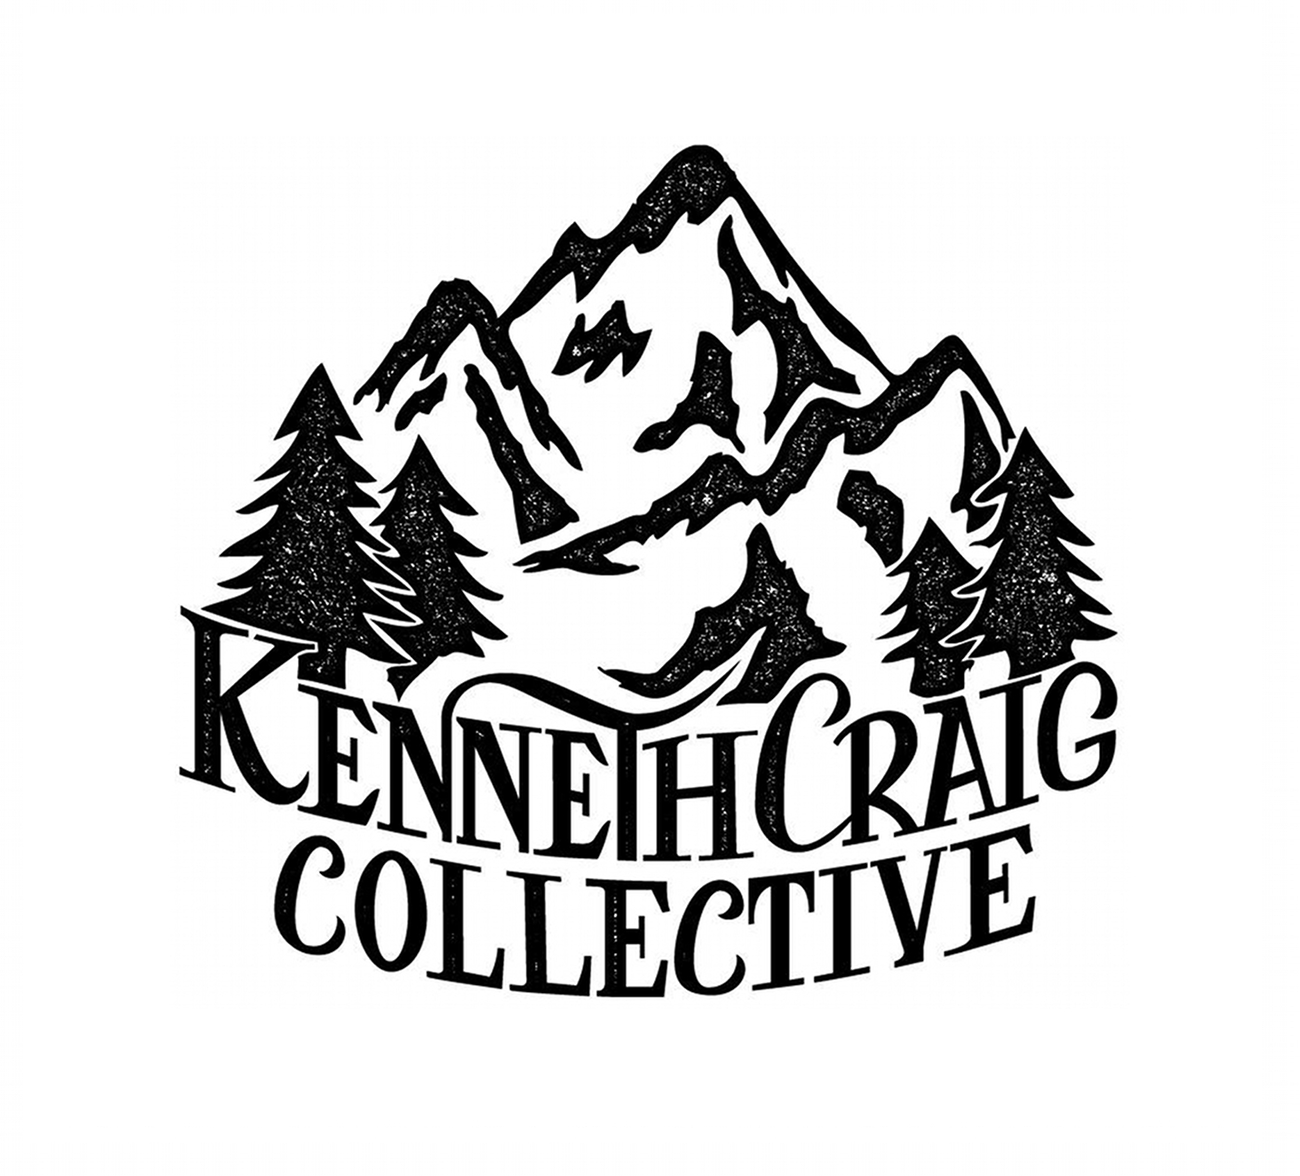 Kenneth Craig Collective